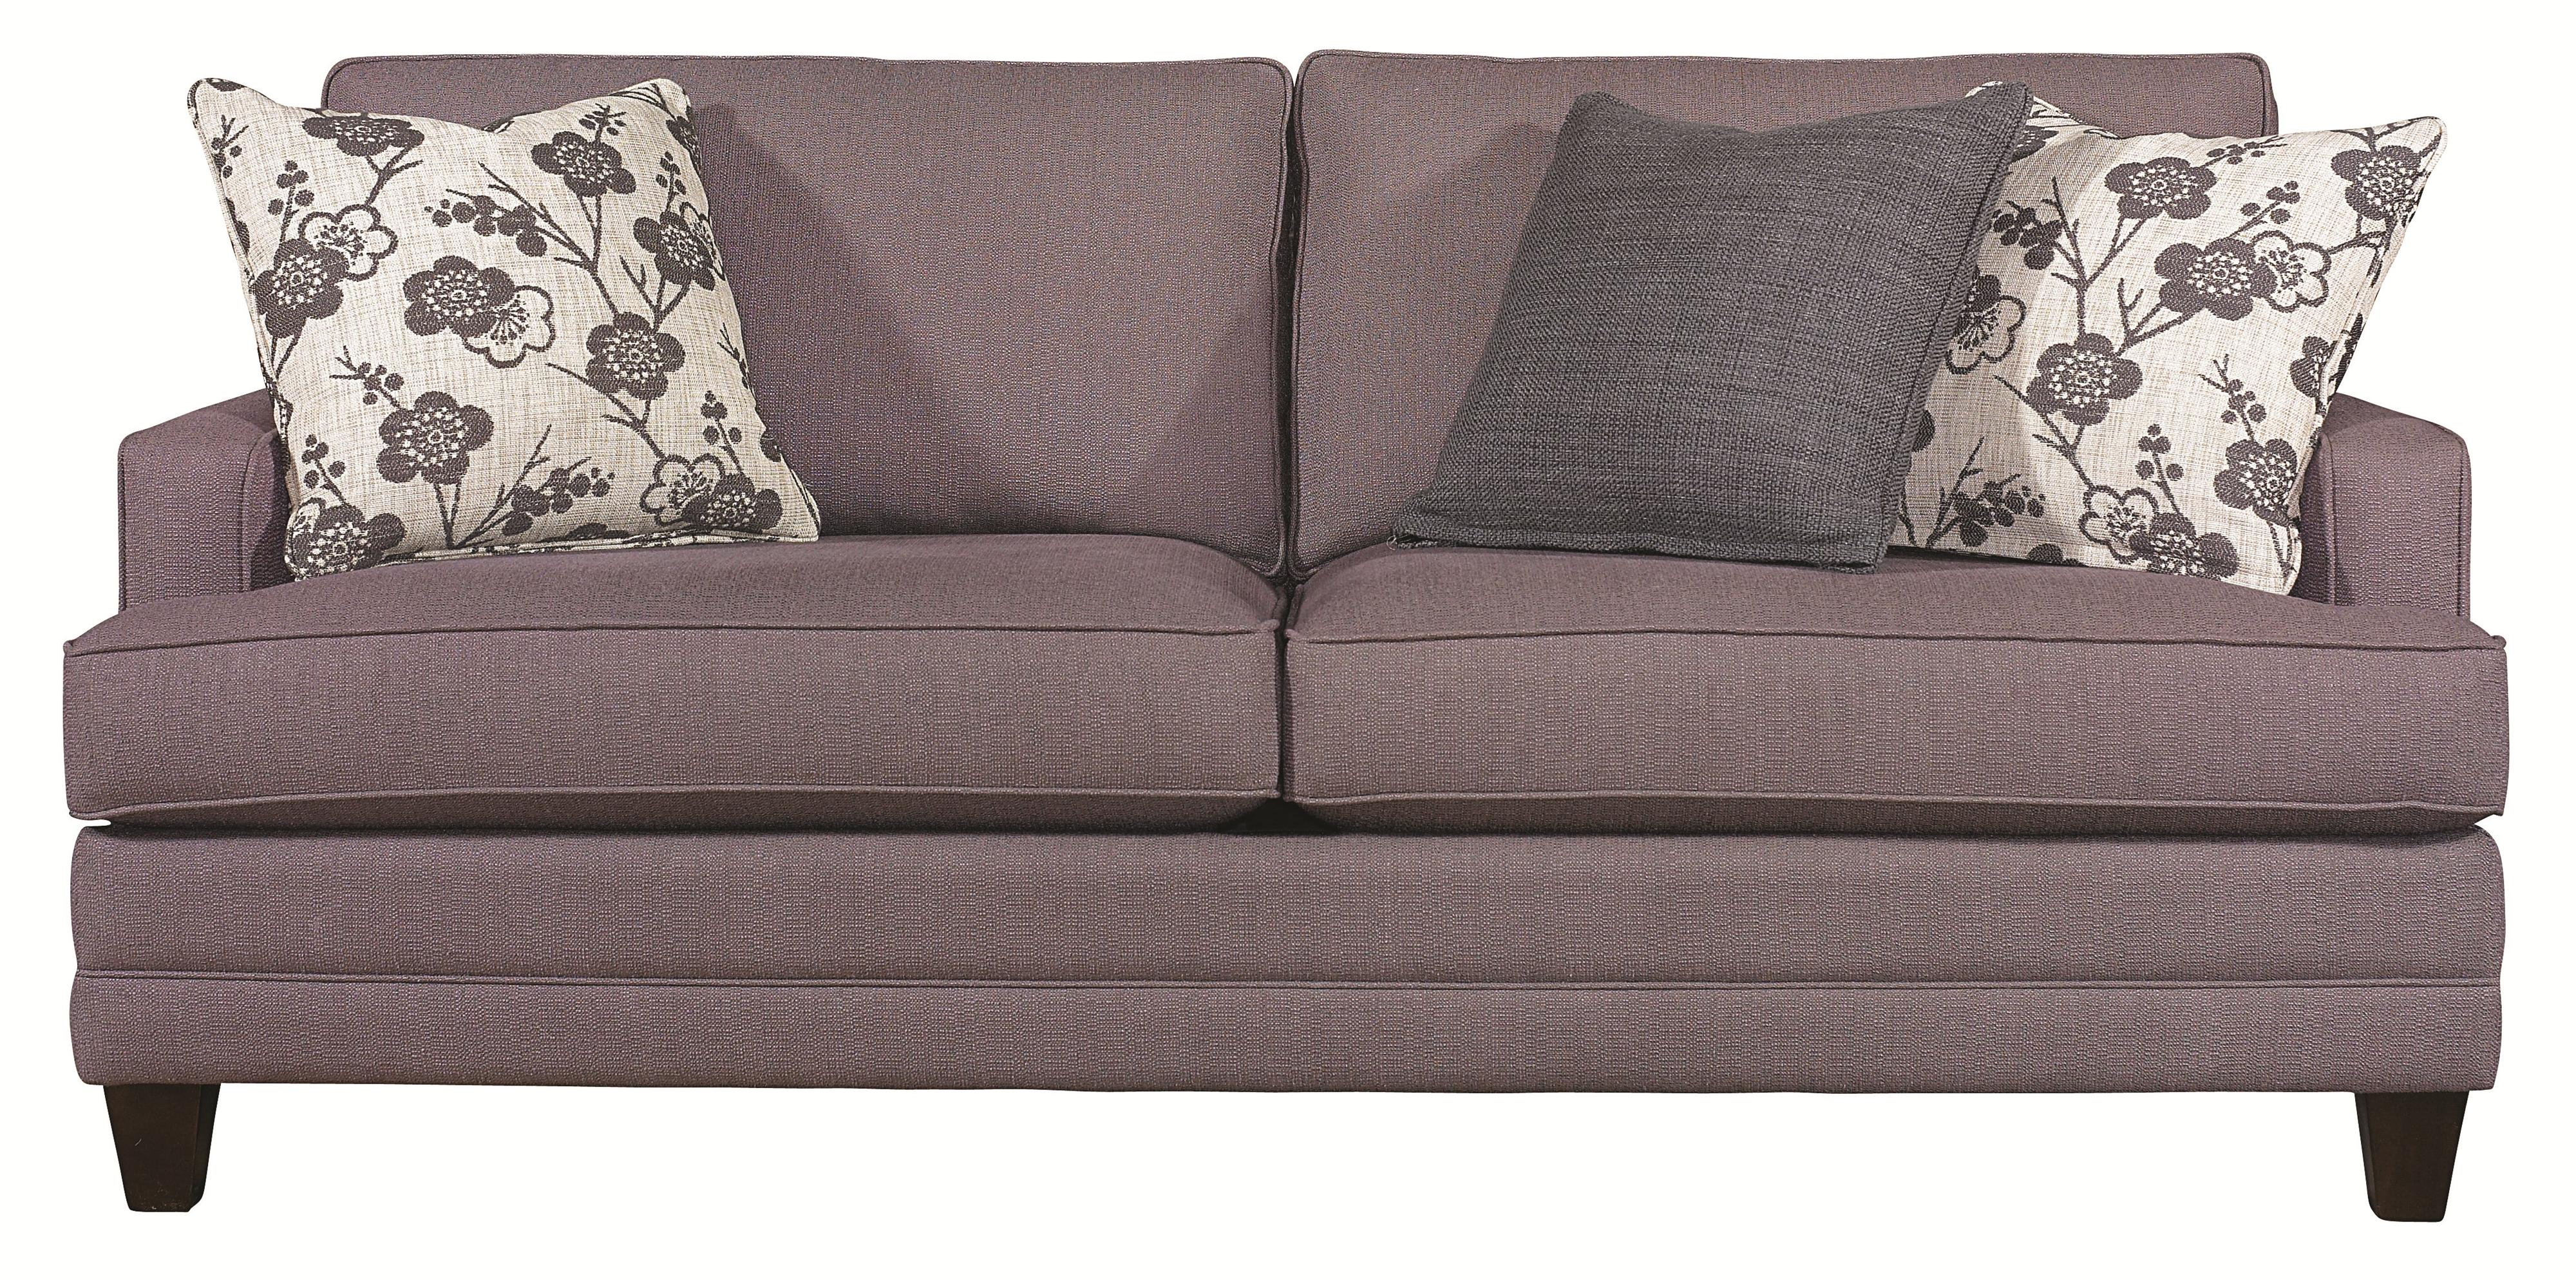 Flexsteel Sofa Fabric Choices Images Leather